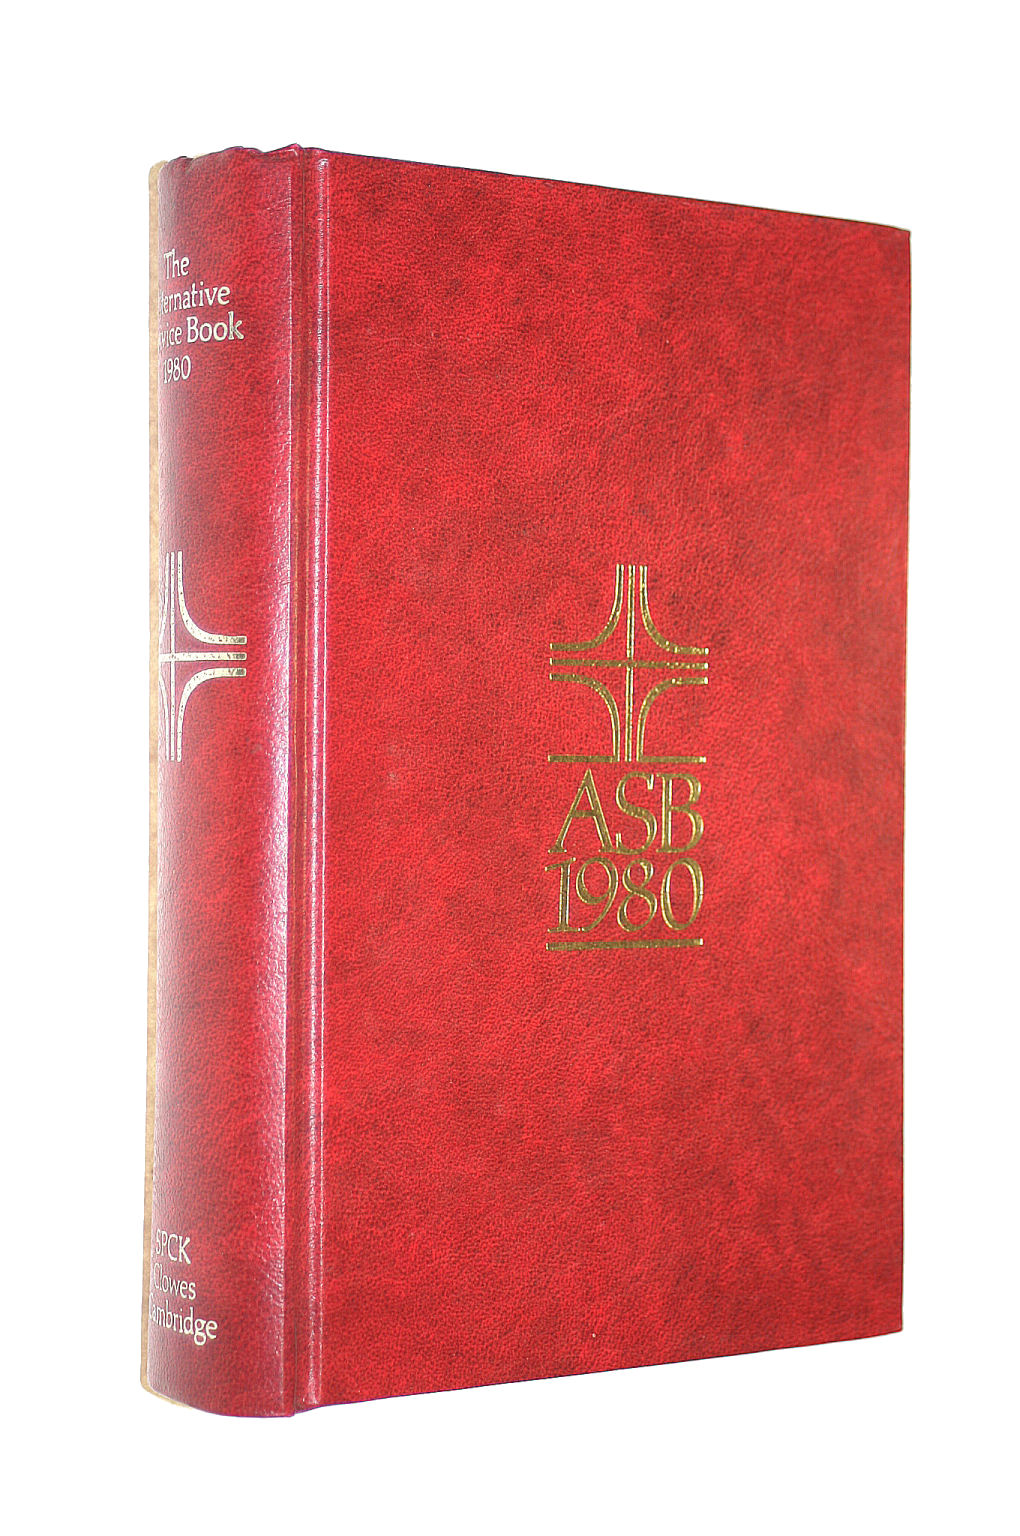 Image for The Alternative Service Book 1980.Services Authorized For Use In The Church Of England In Conjunction With The Book Of Common Prayer Together With The Liturgical Psalter With Index To The Readings